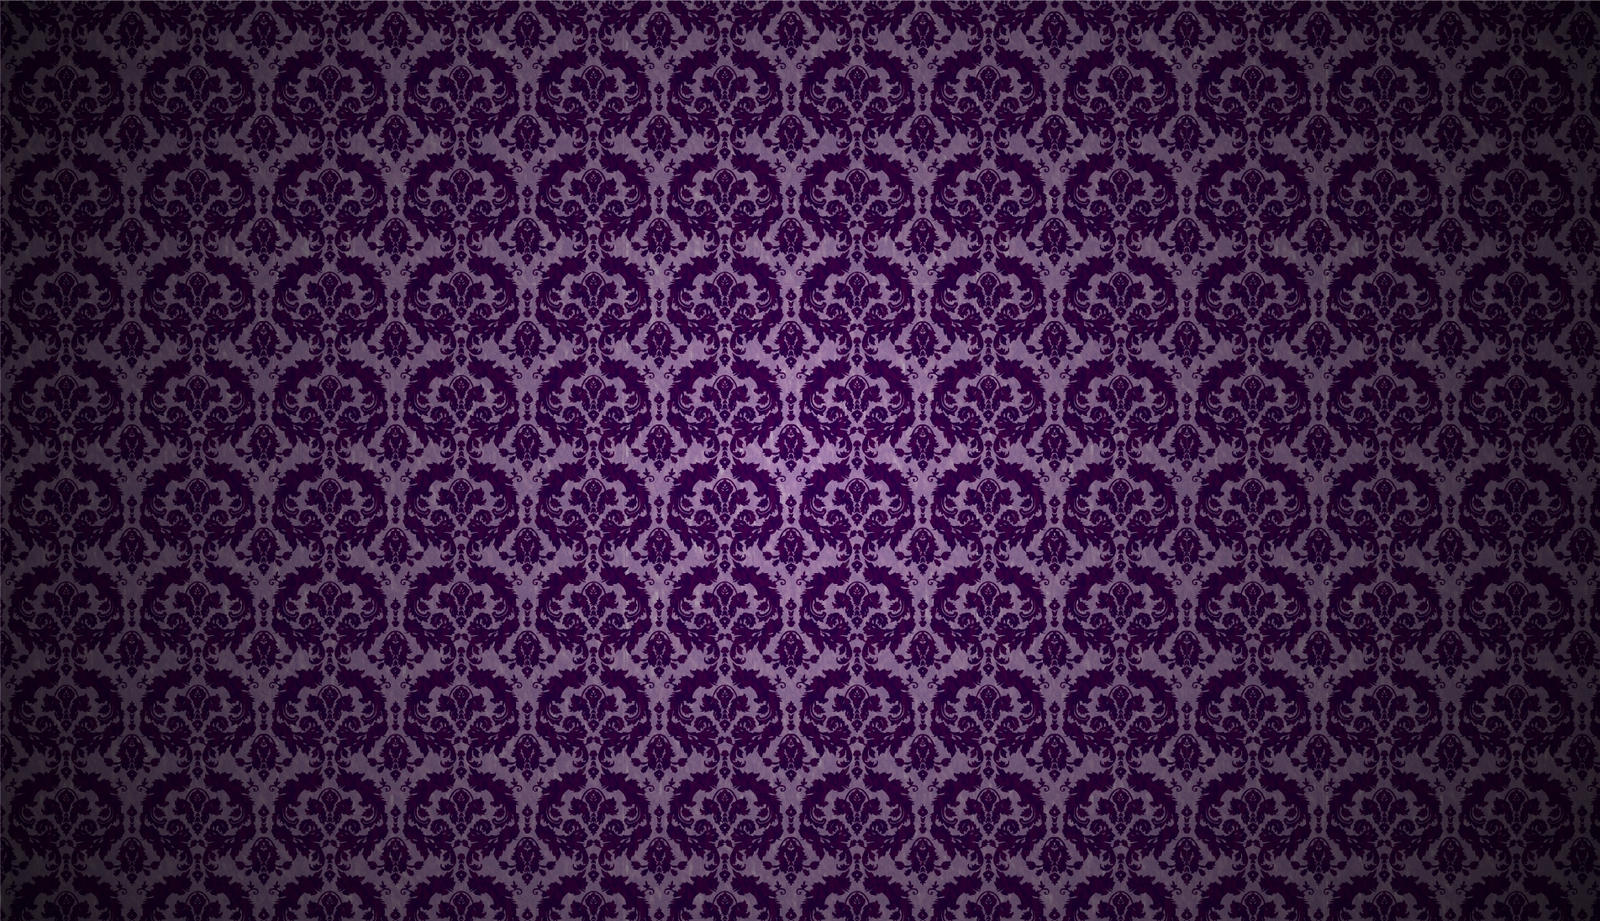 Purple foil damask wallpaper by mt schorsch on deviantart for Purple wallpaper for walls